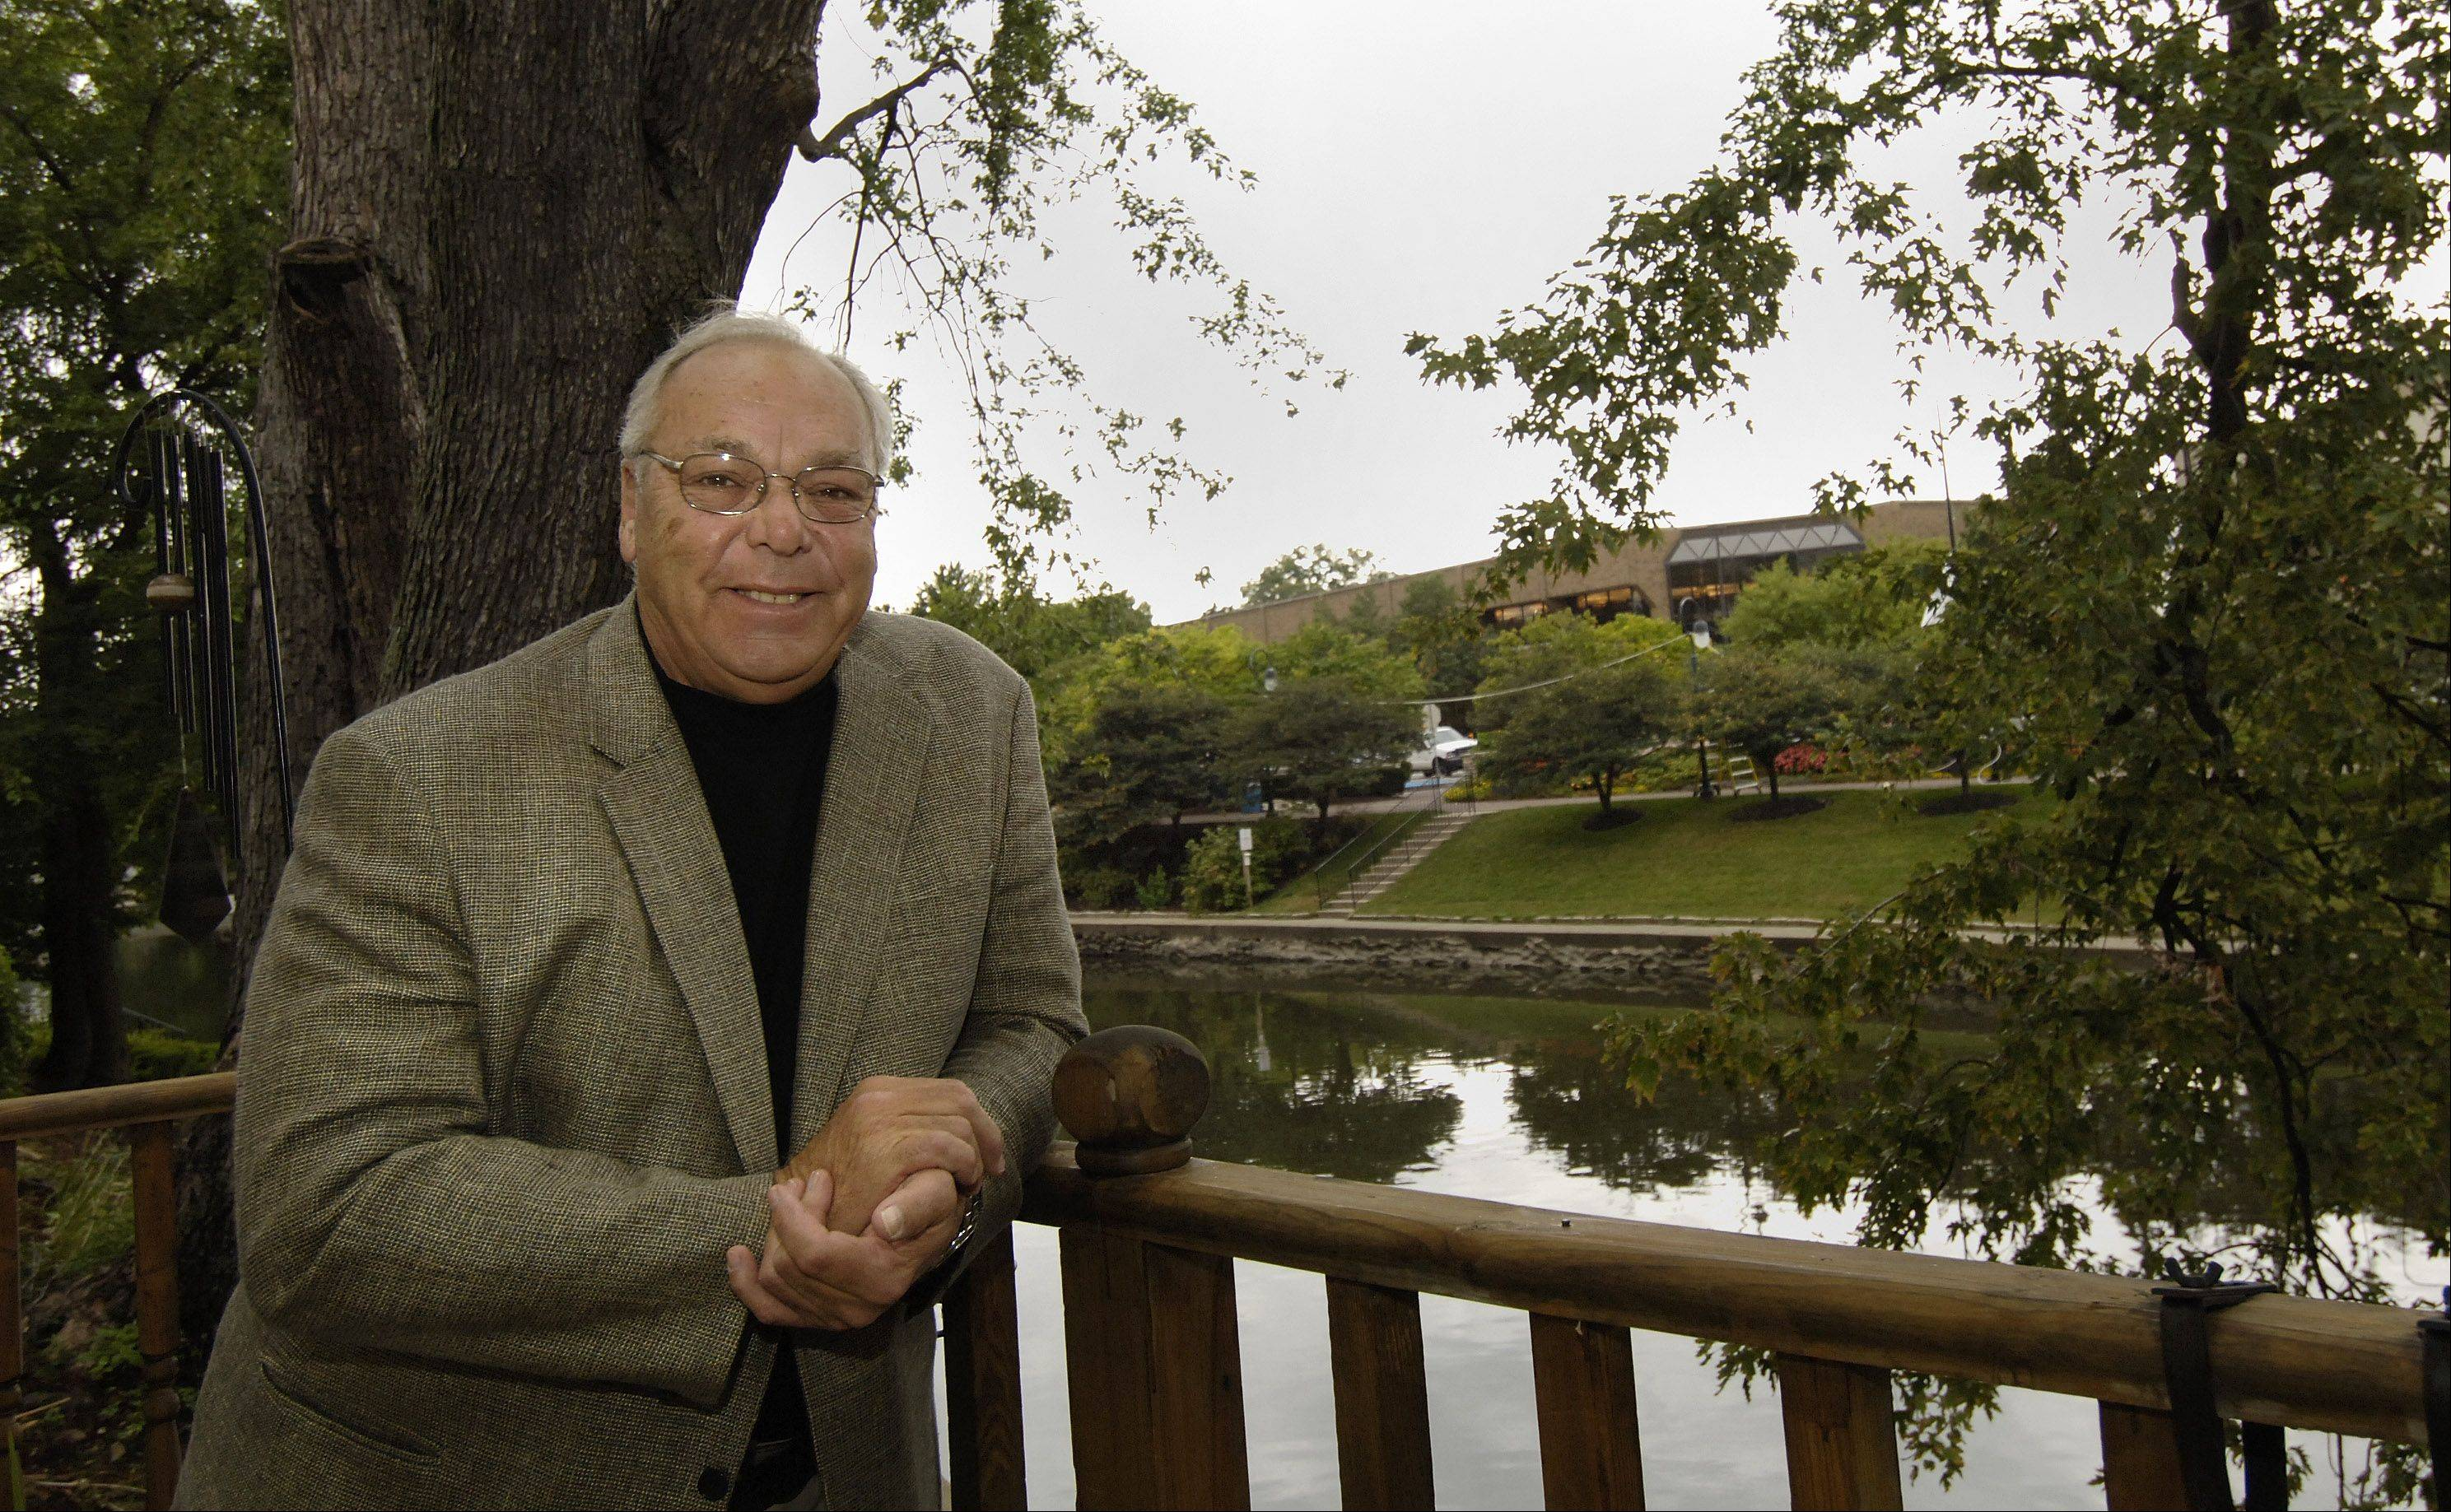 Naperville attorney Bill Brestal on his office patio overlooking the Naperville Riverwalk in 2005.